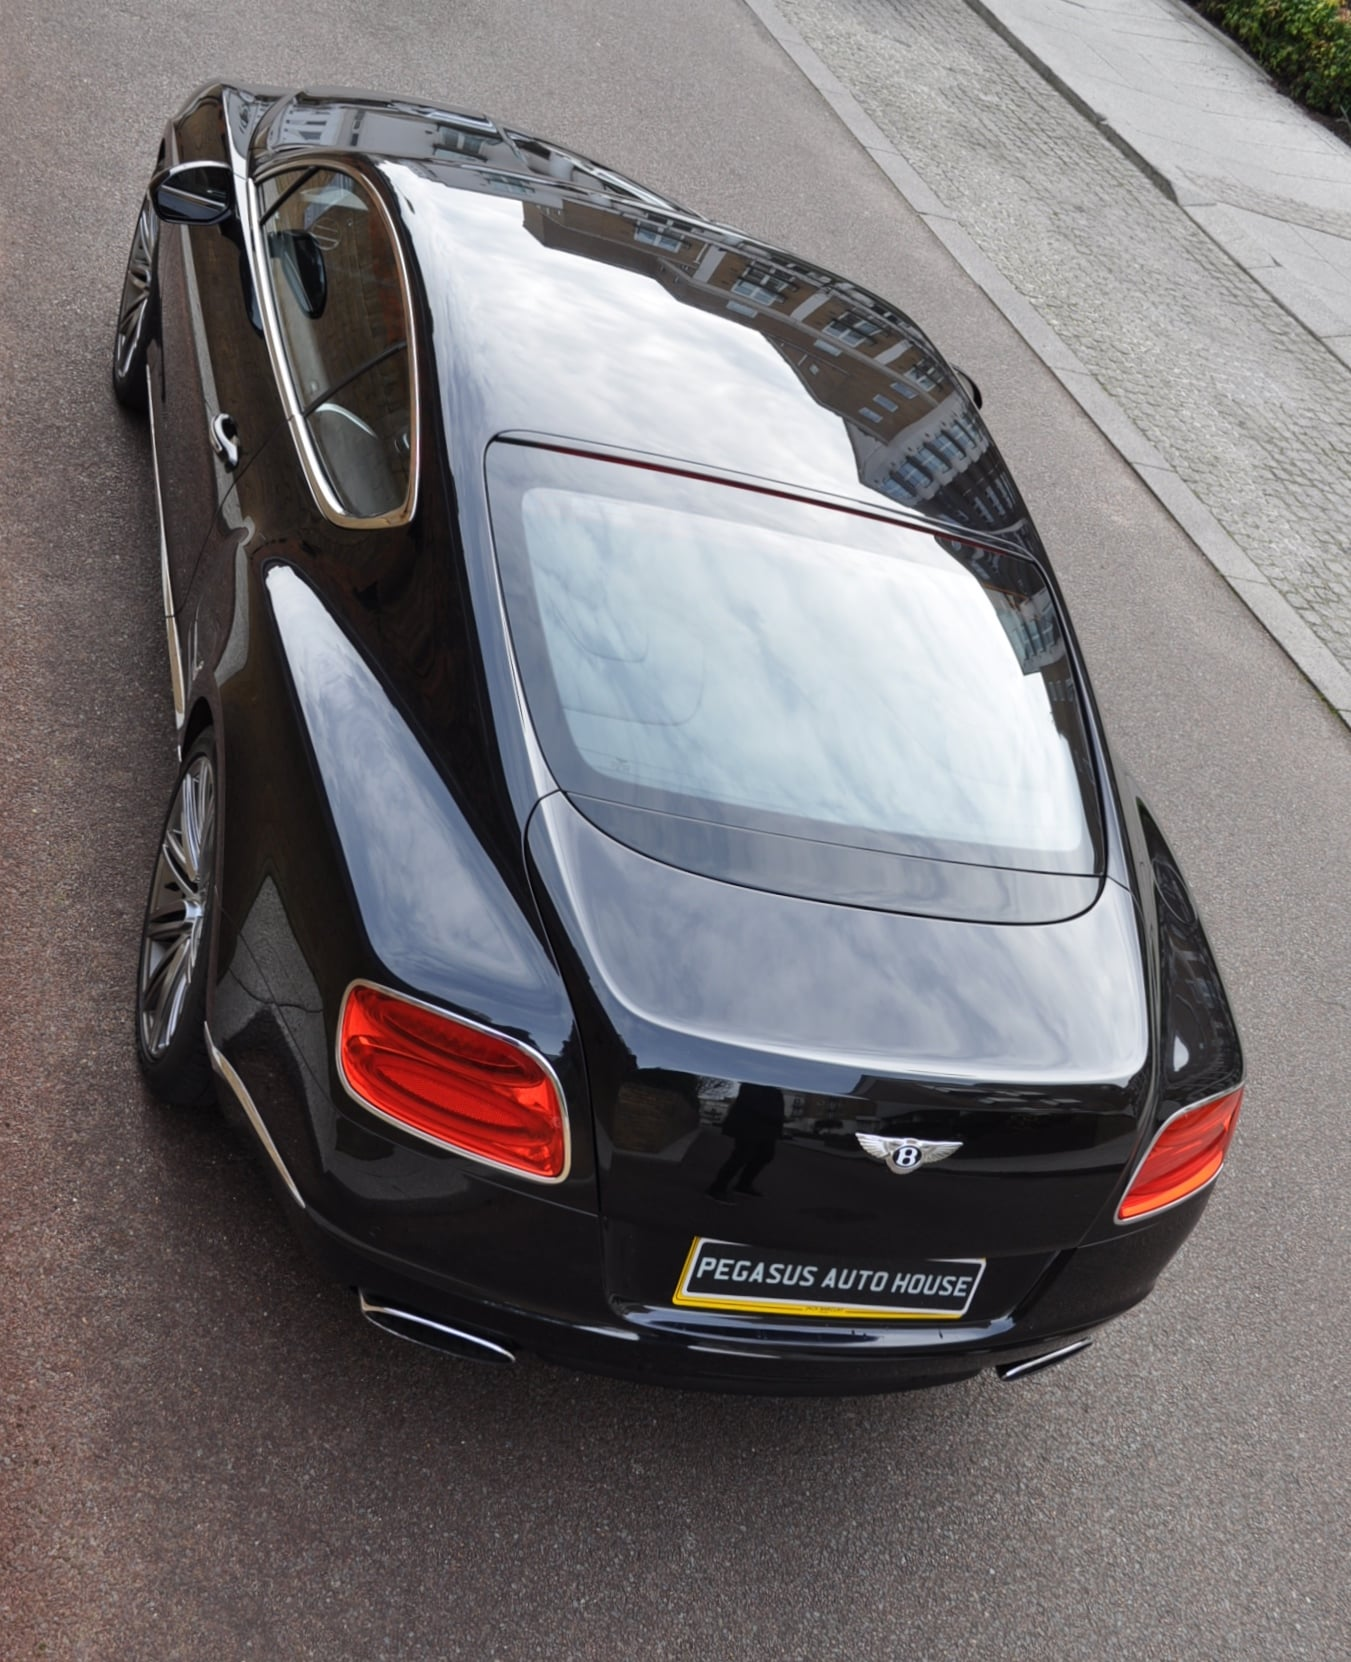 Tesla Model S Black Electric Car Front View Full Hd: RHD Bentley Continental GT Speed